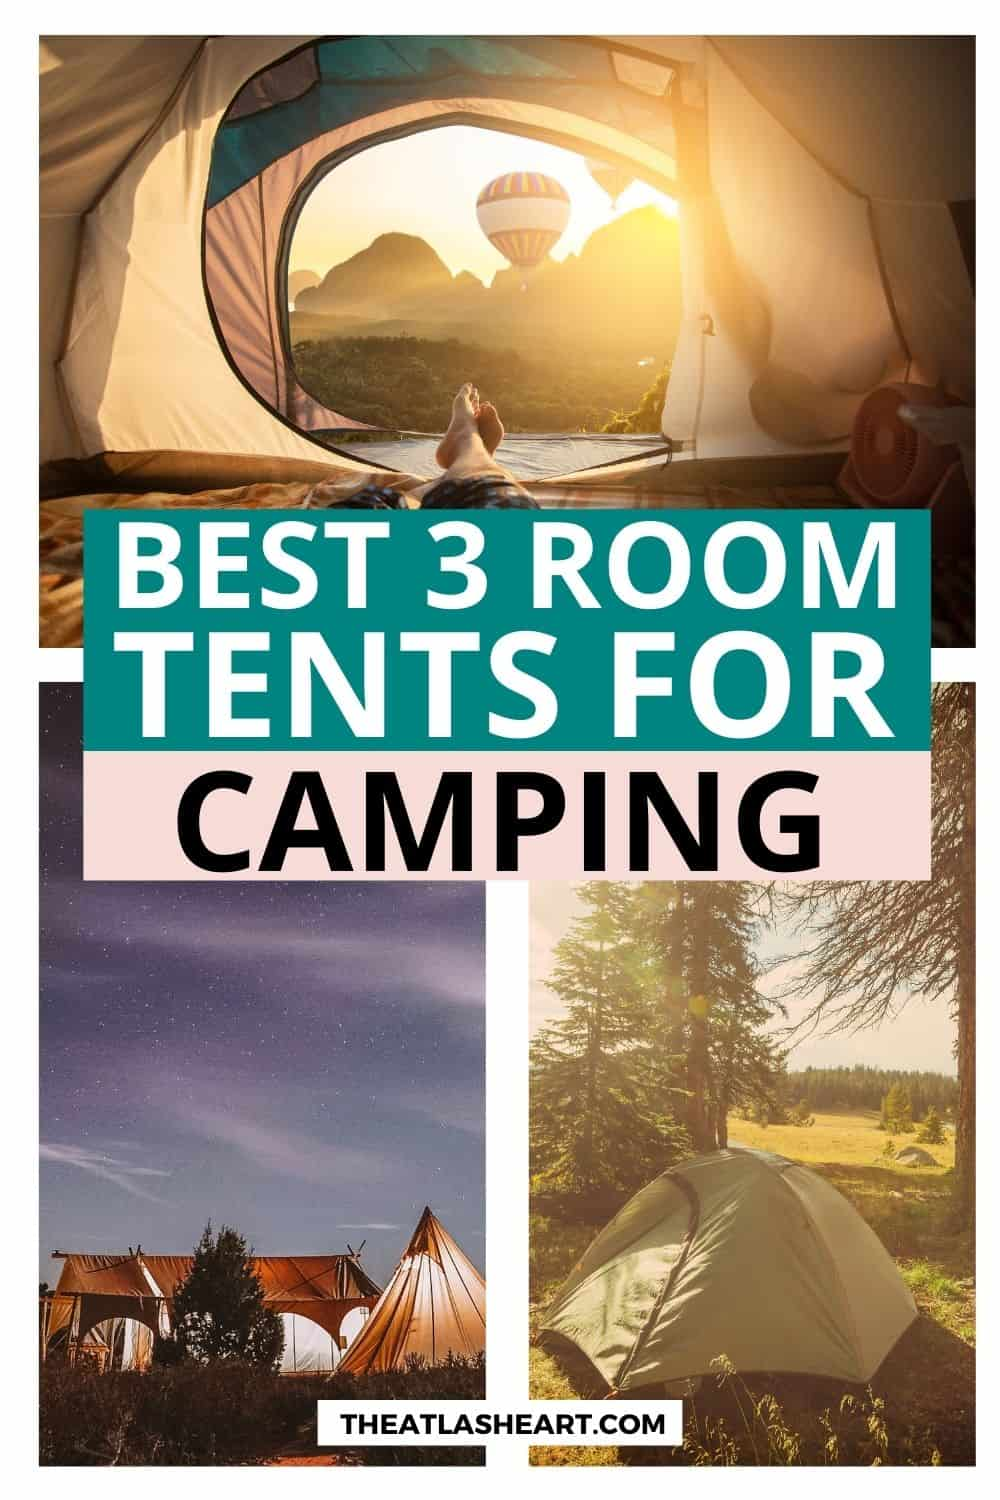 Best 3 Room Tent for Camping With More Space (2021 Buying Guide)